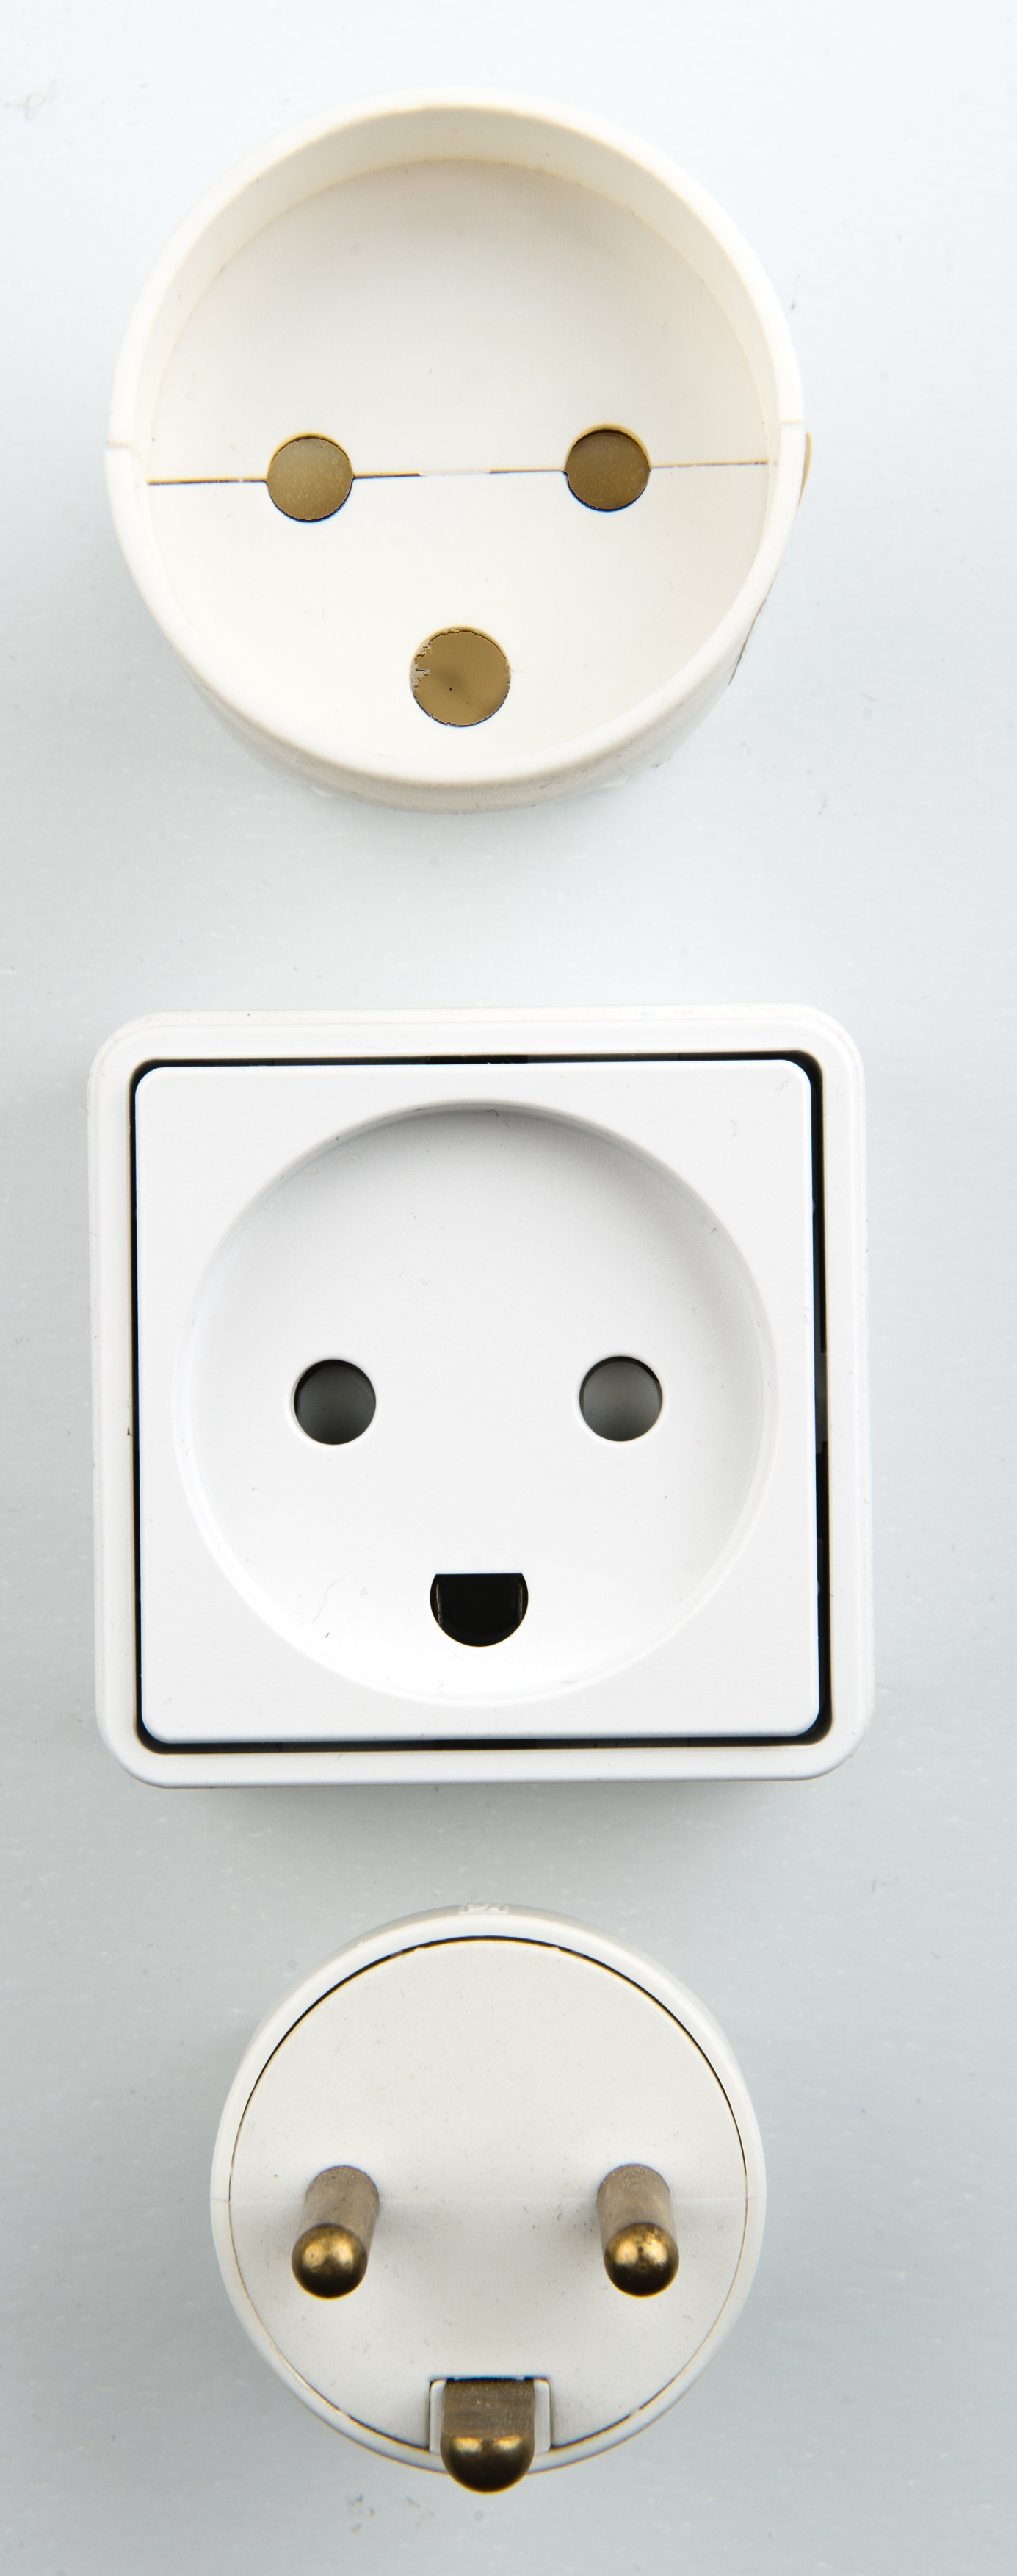 Danish electrical plugs.jpg